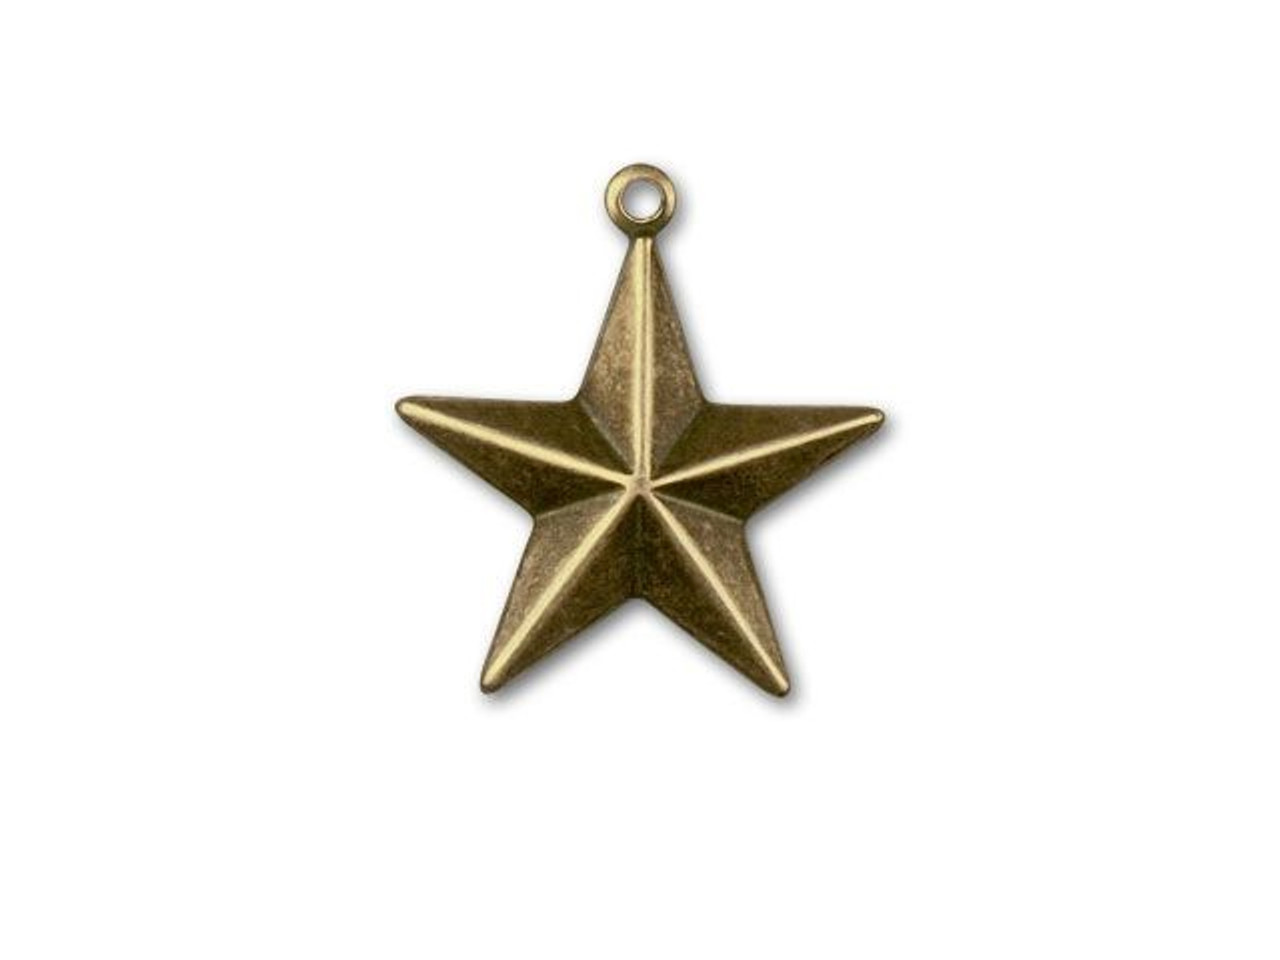 4 Large Star Charms Antiqued Bronze Star Pendants Filigree Celestial Charms